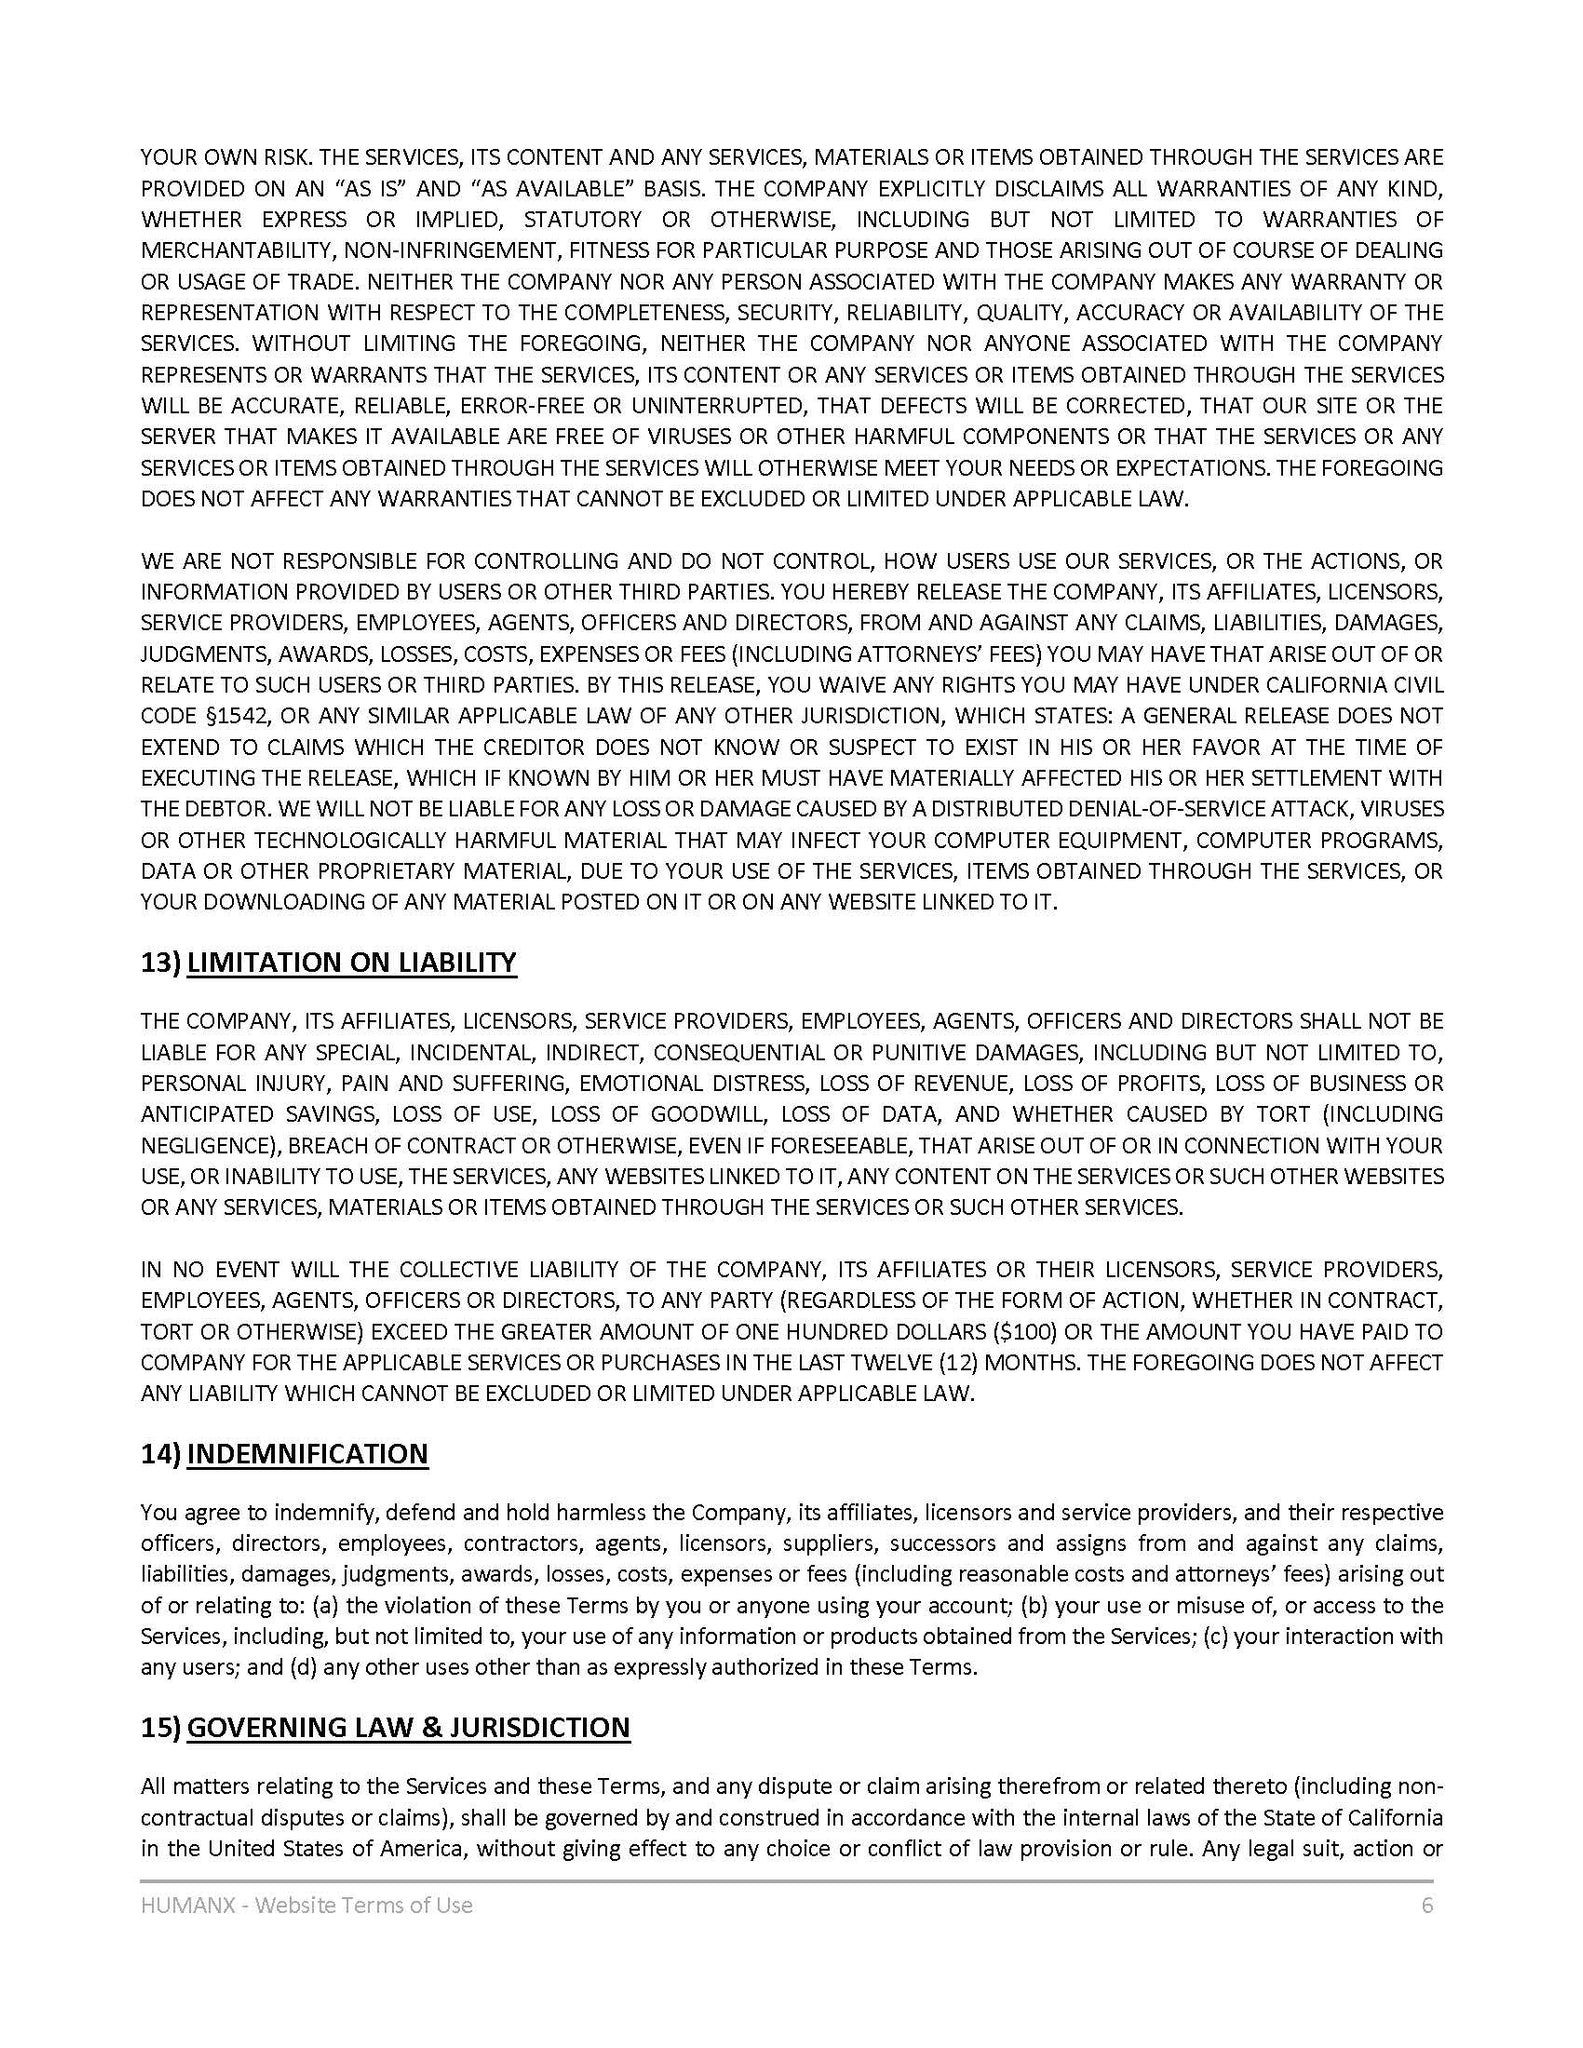 Terms of Use - Page 6